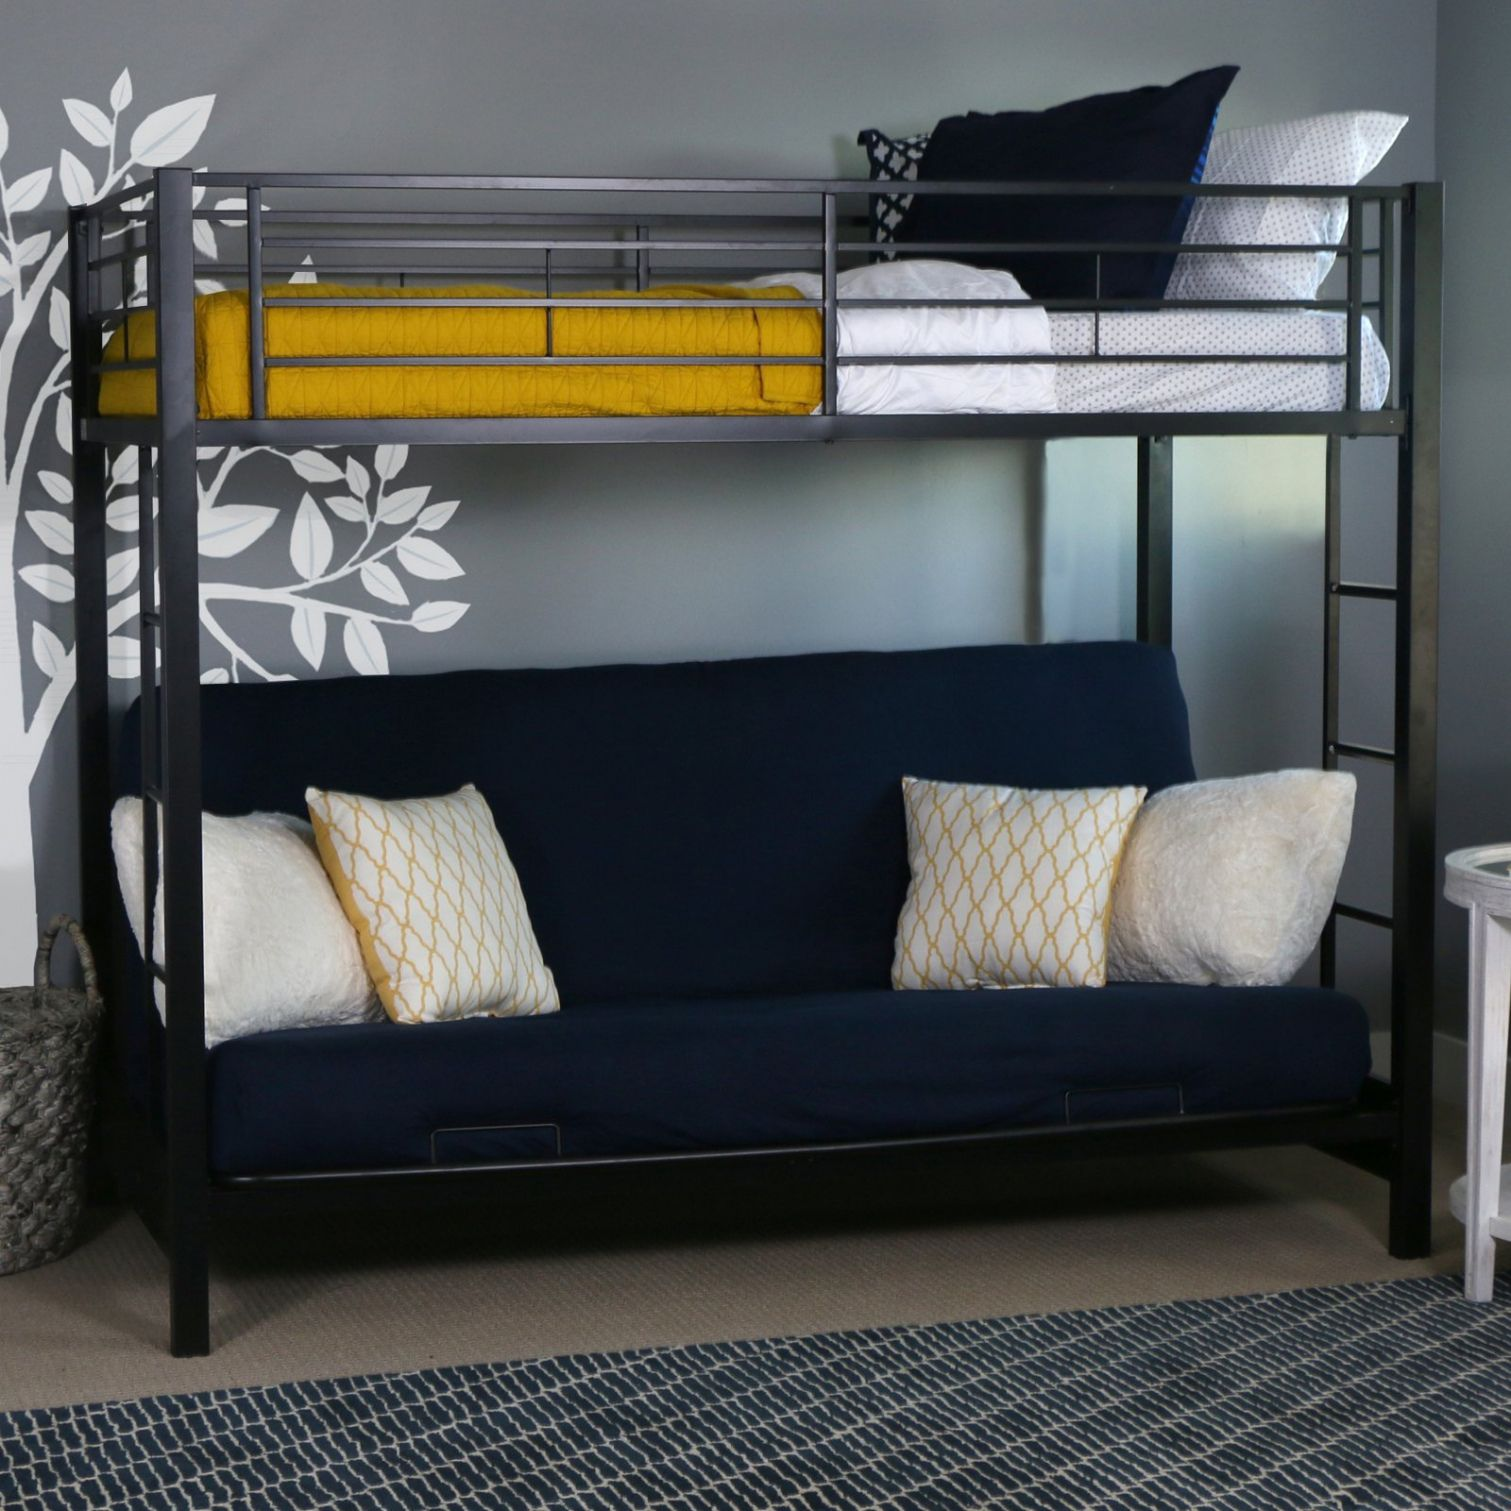 Bunk Bed With Futon On Bottom  Modern Interior Paint